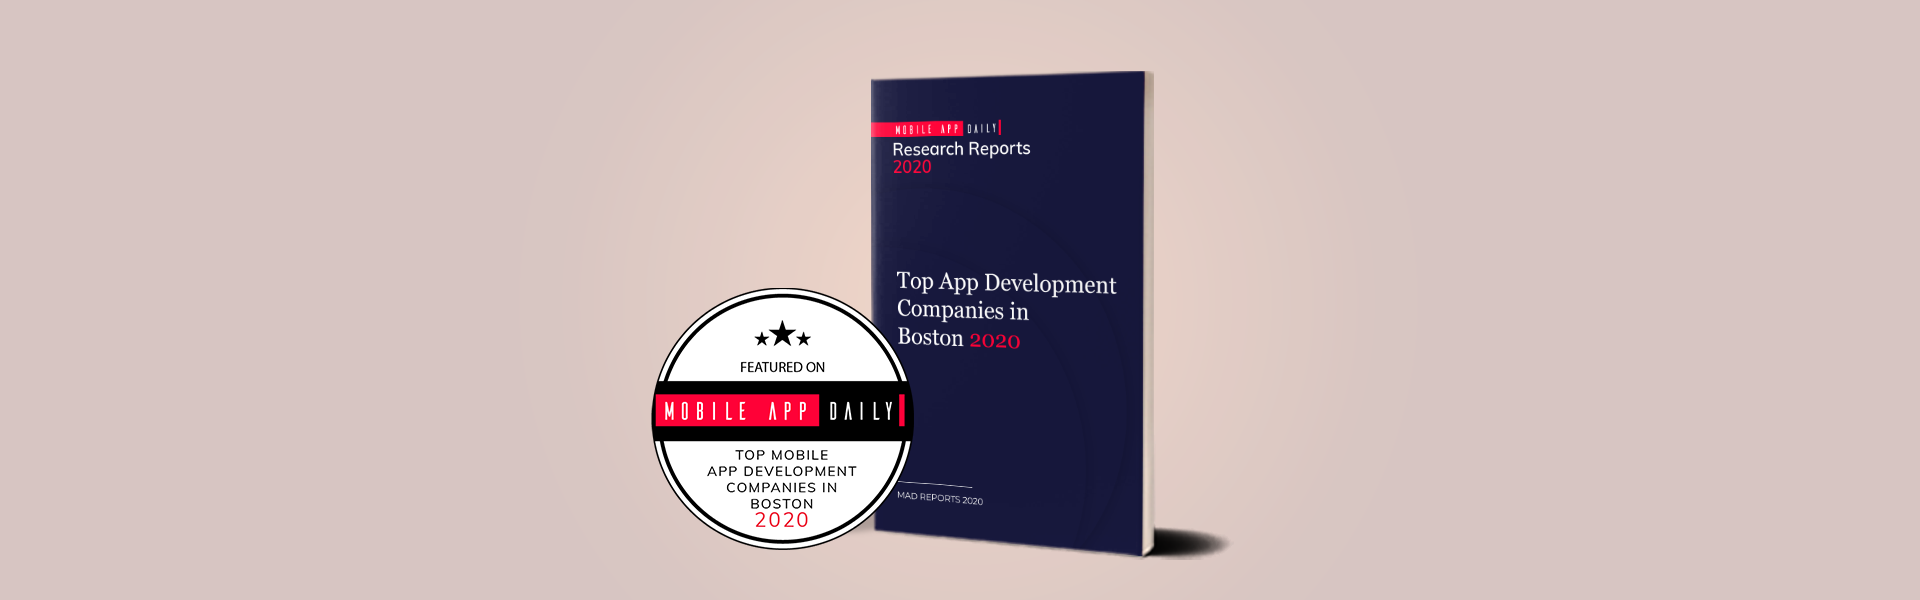 OrangeLoops Recognized As A Top Mobile App Development Company In Boston